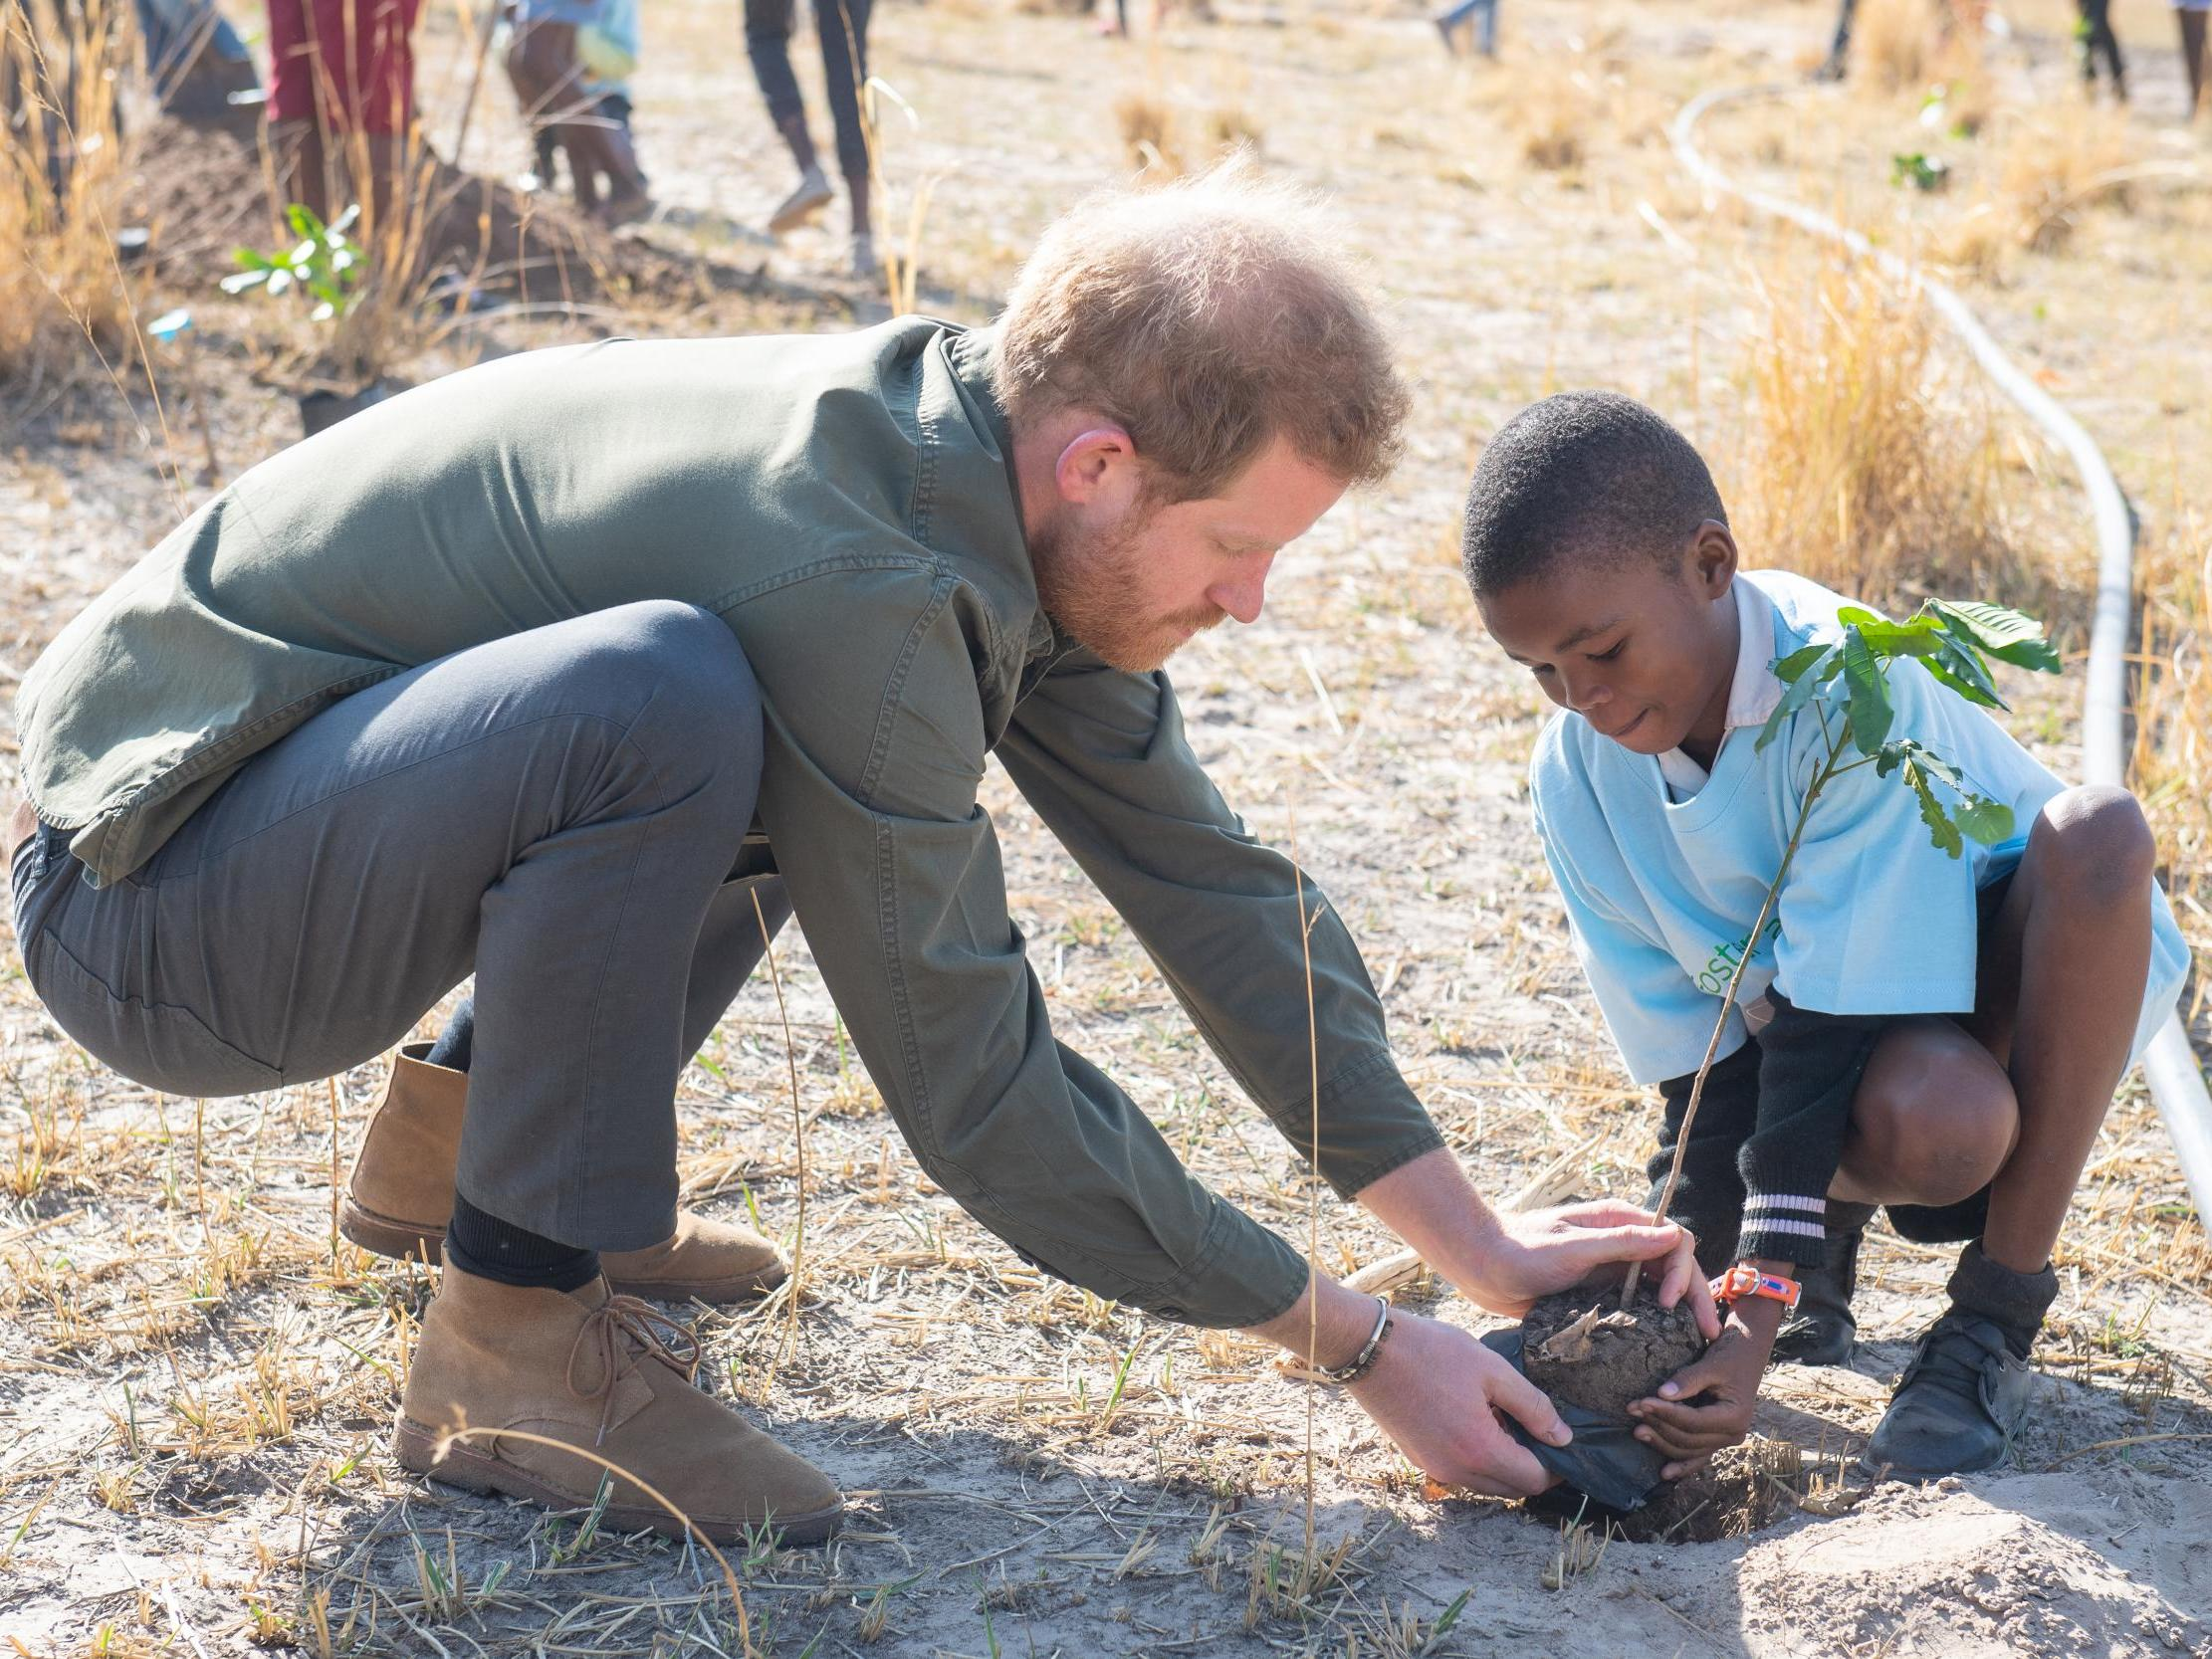 Prince Harry says climate change is 'a race against time' as he backs Greta Thunberg